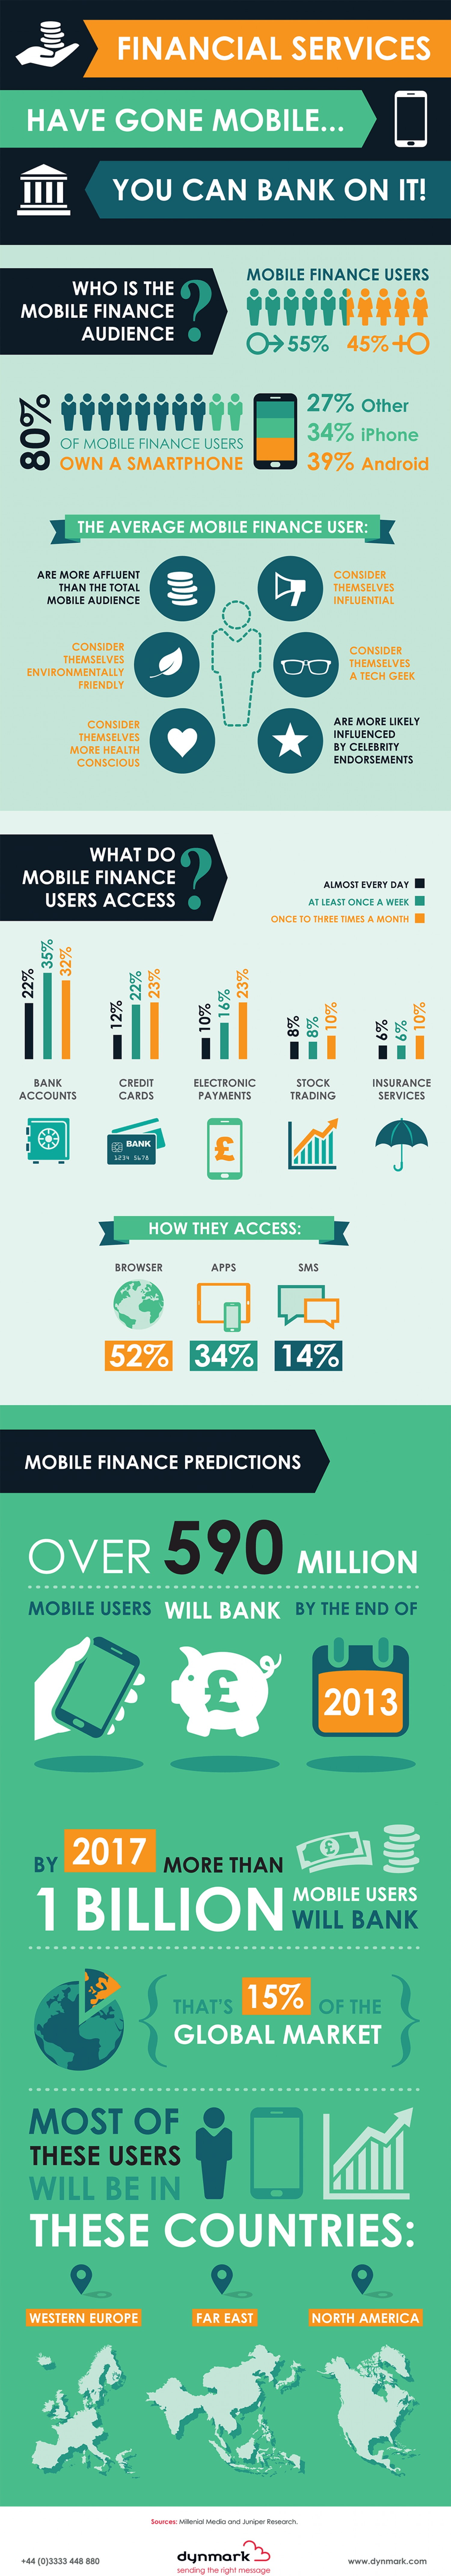 10. Financial services have gone mobile... you can bank on it!